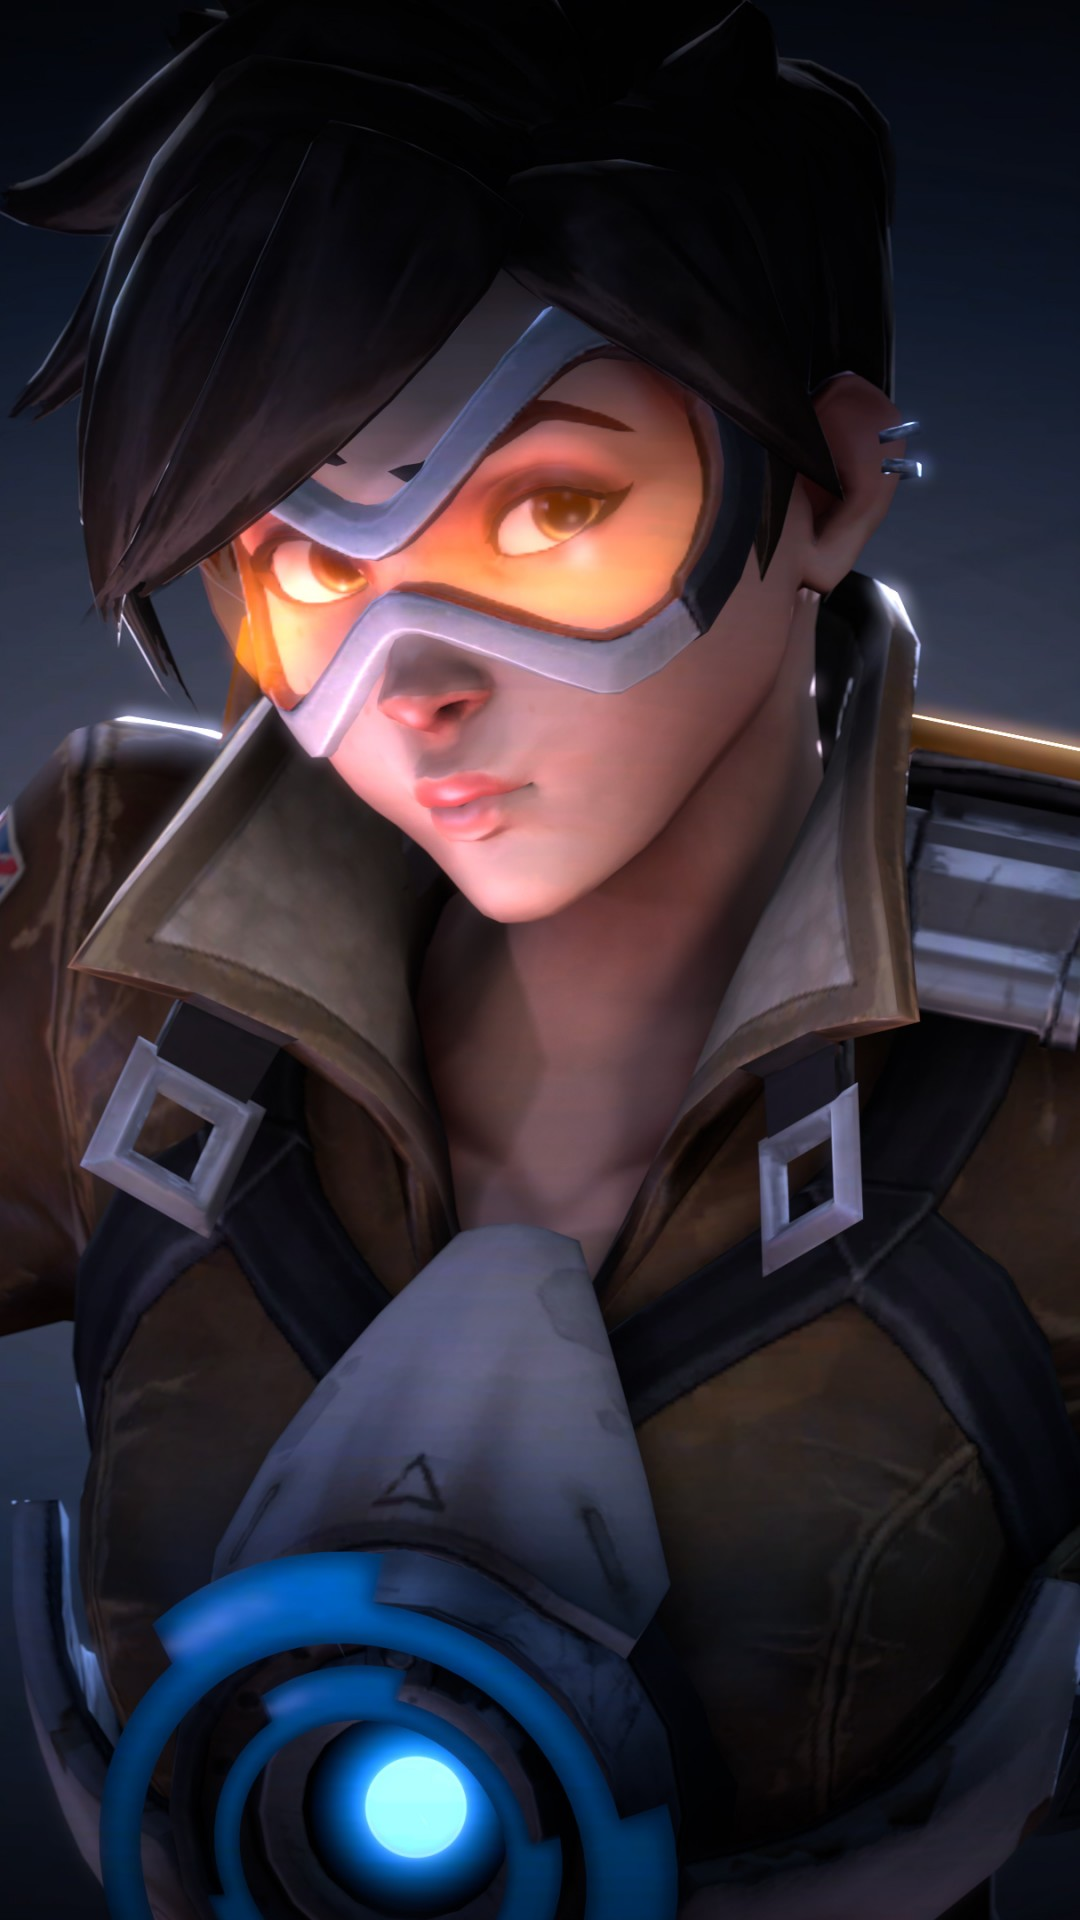 Best Animated Wallpapers Wallpaper Tracer Hd 4k Overwatch Games 10203